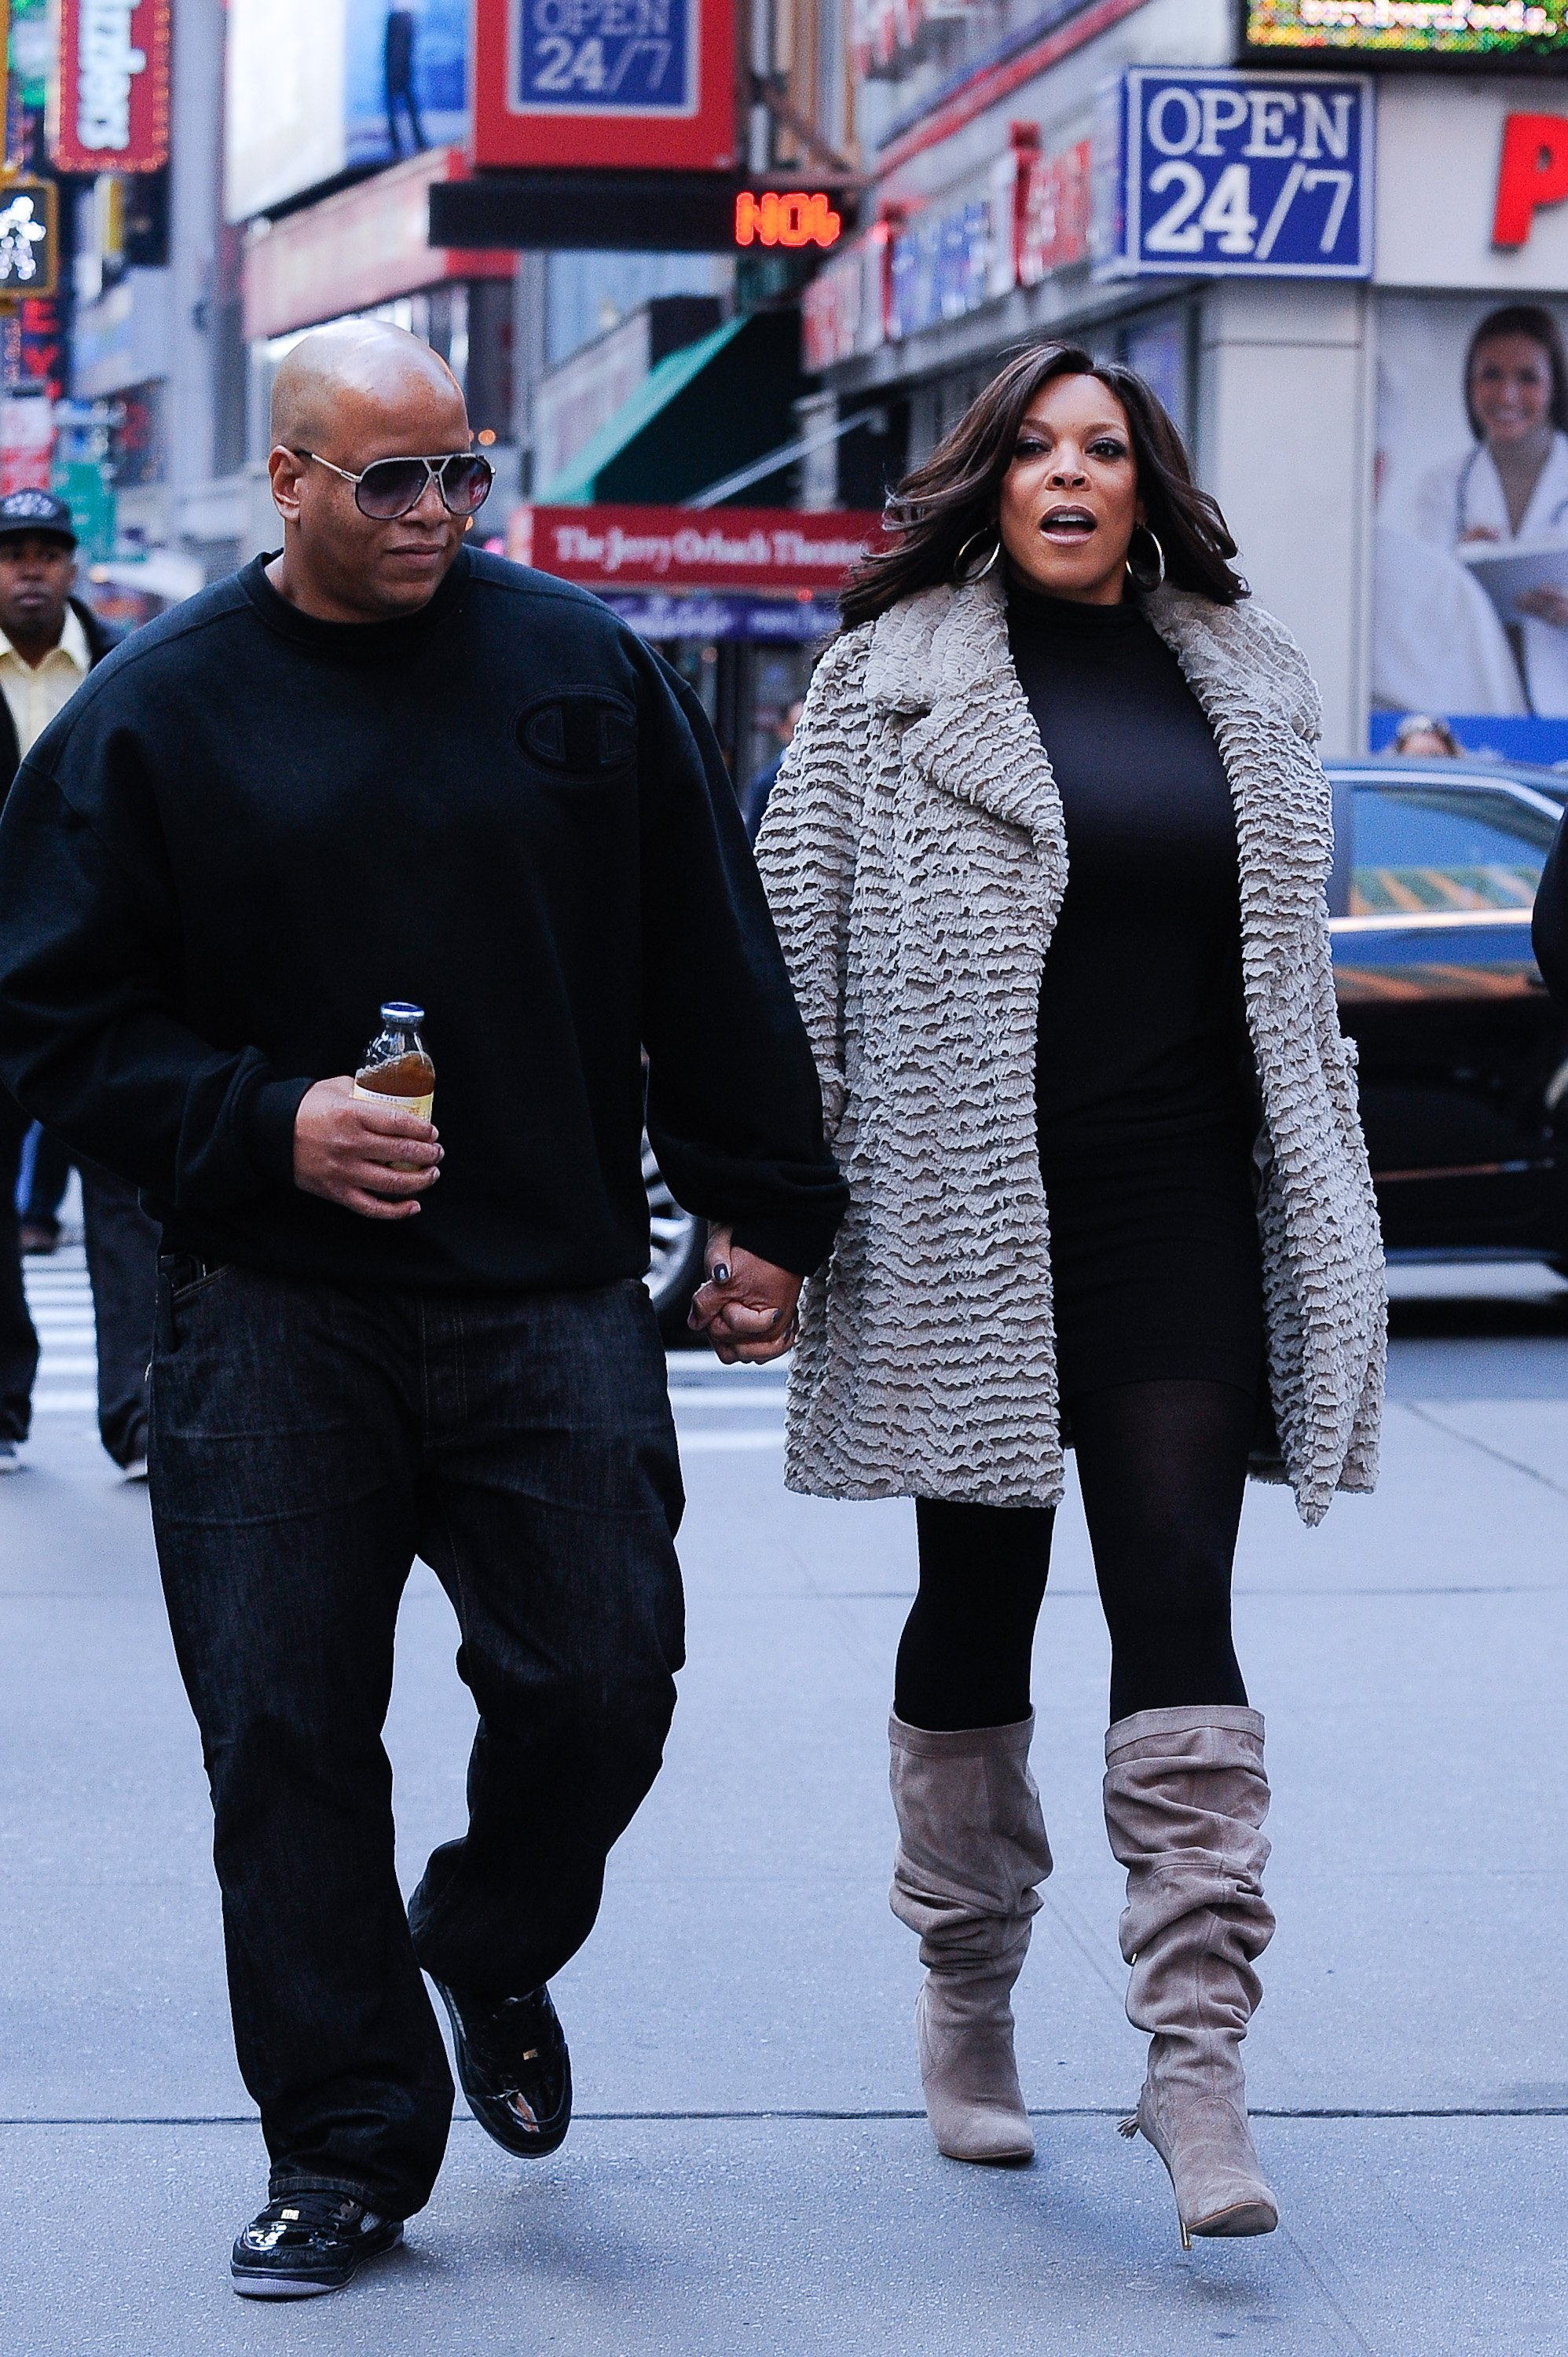 """Wendy Williams and Kevin Hunter leaving the """"Celebrity Aprentice"""" film set back in October 2010. If rumours of his affair are to be believed, Kevin was already seeing his alleged mistress, Sharina Hudson then. 